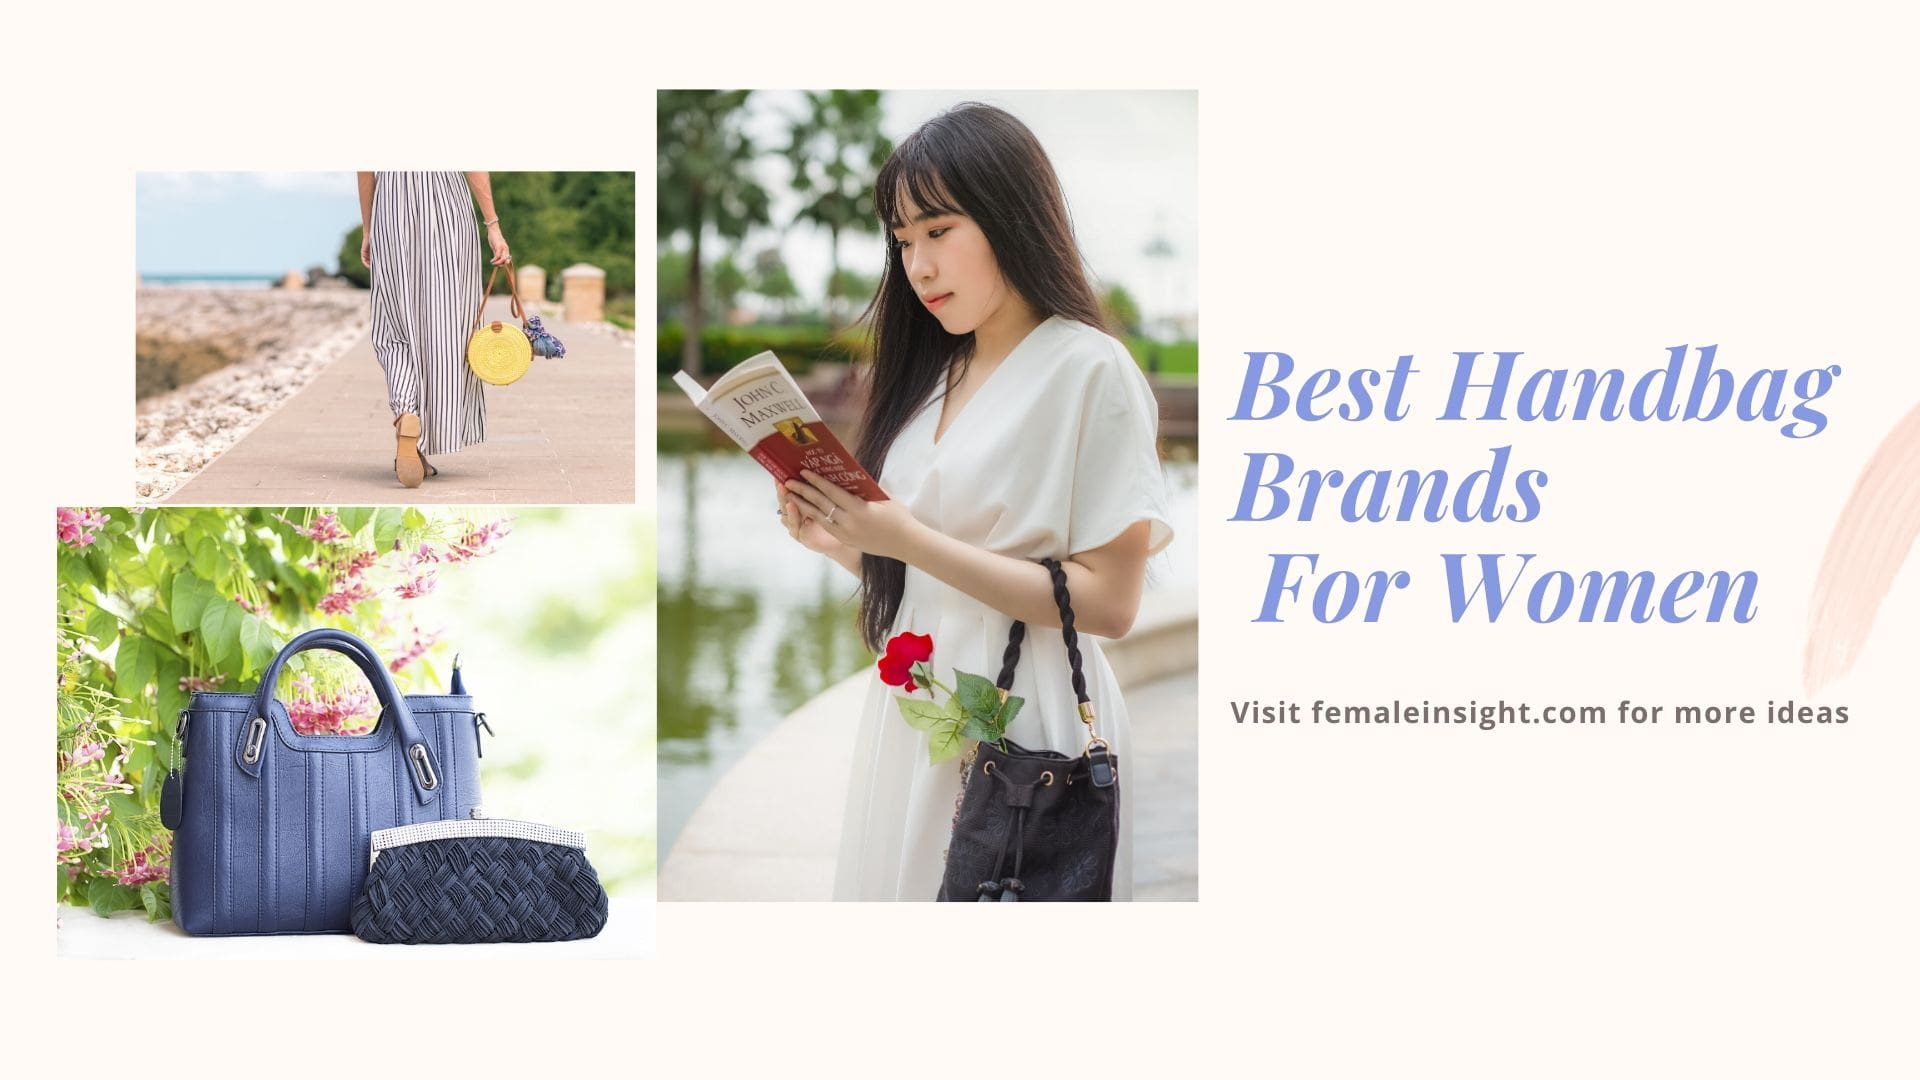 Best Handbag Brands For Women